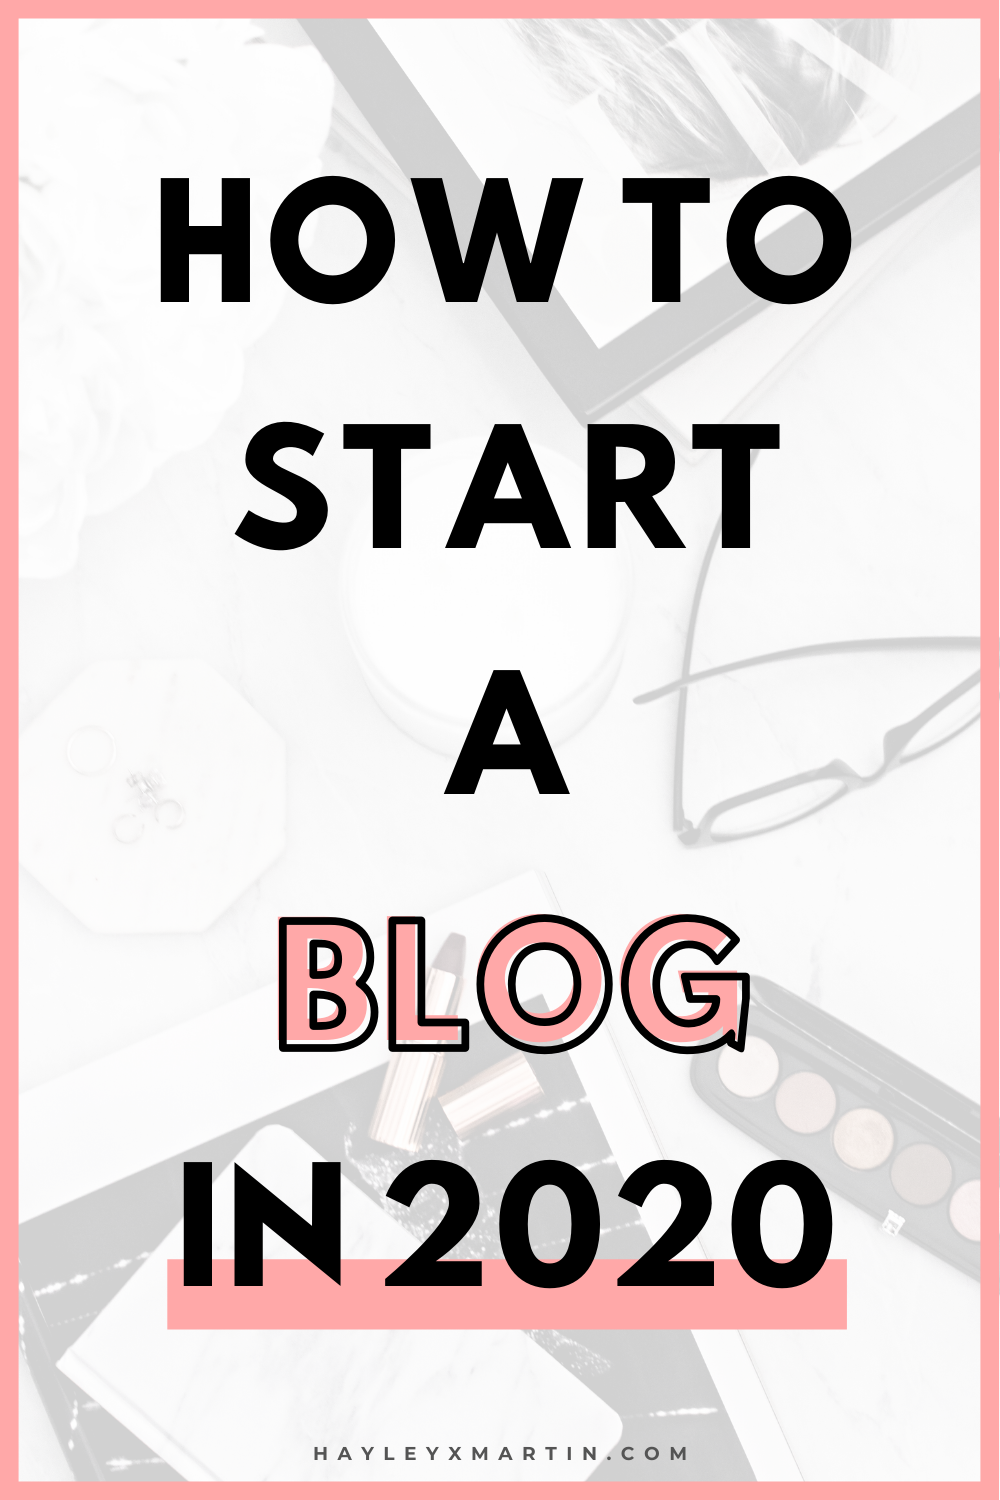 HOW TO START A BLOG IN 2020 | HAYLEYXMARTIN